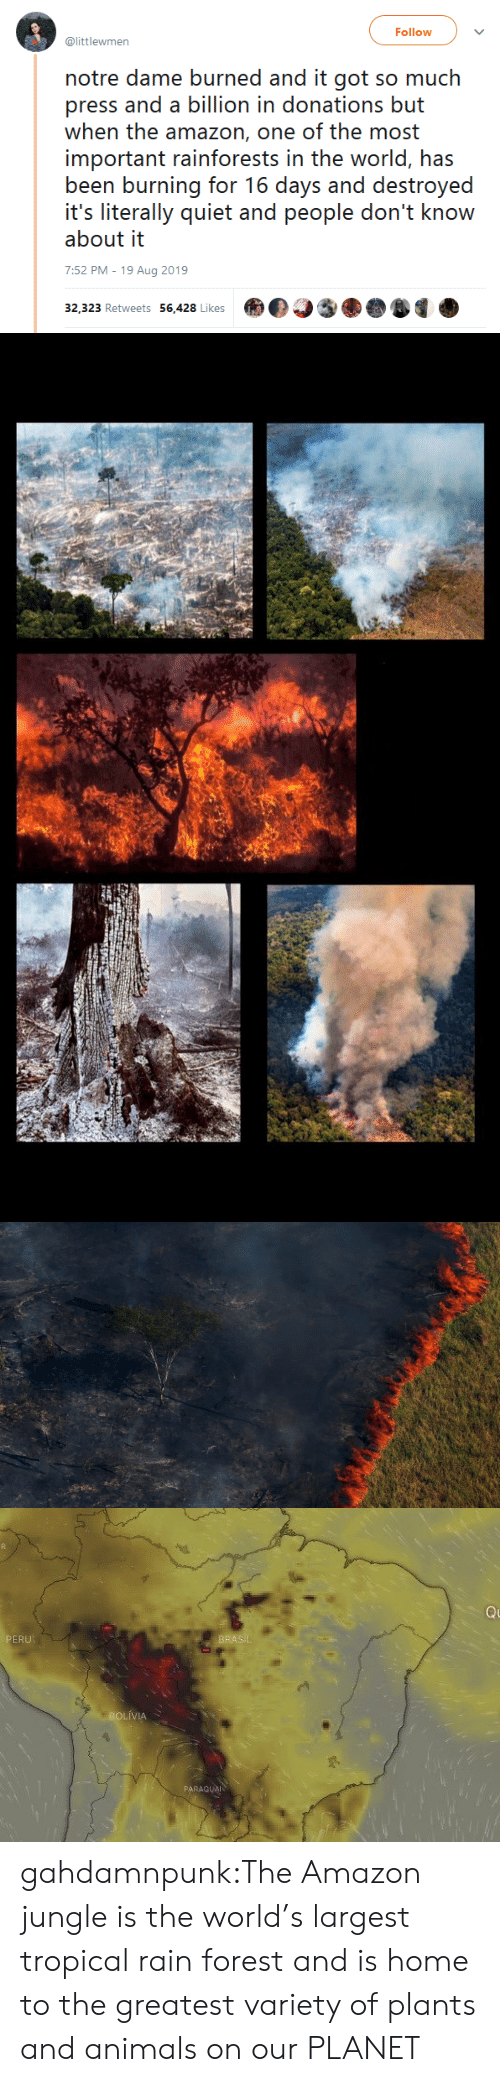 Amazon, Animals, and Tumblr: Follow  @littlewmen  notre dame burned and it got so much  press and a billion in donations but  when the amazon, one of the most  important rainforests in the world, has  been burning for 16 days and destroyed  it's literally quiet and people don't know  about it  7:52 PM - 19 Aug 2019  32,323 Retweets 56,428 Likes   Q  PERU  BRASIL  BOLIVIA  PARAGUAN gahdamnpunk:The Amazon jungle is the world's largest tropical rain forest and is home to the greatest variety of plants and animals on our PLANET